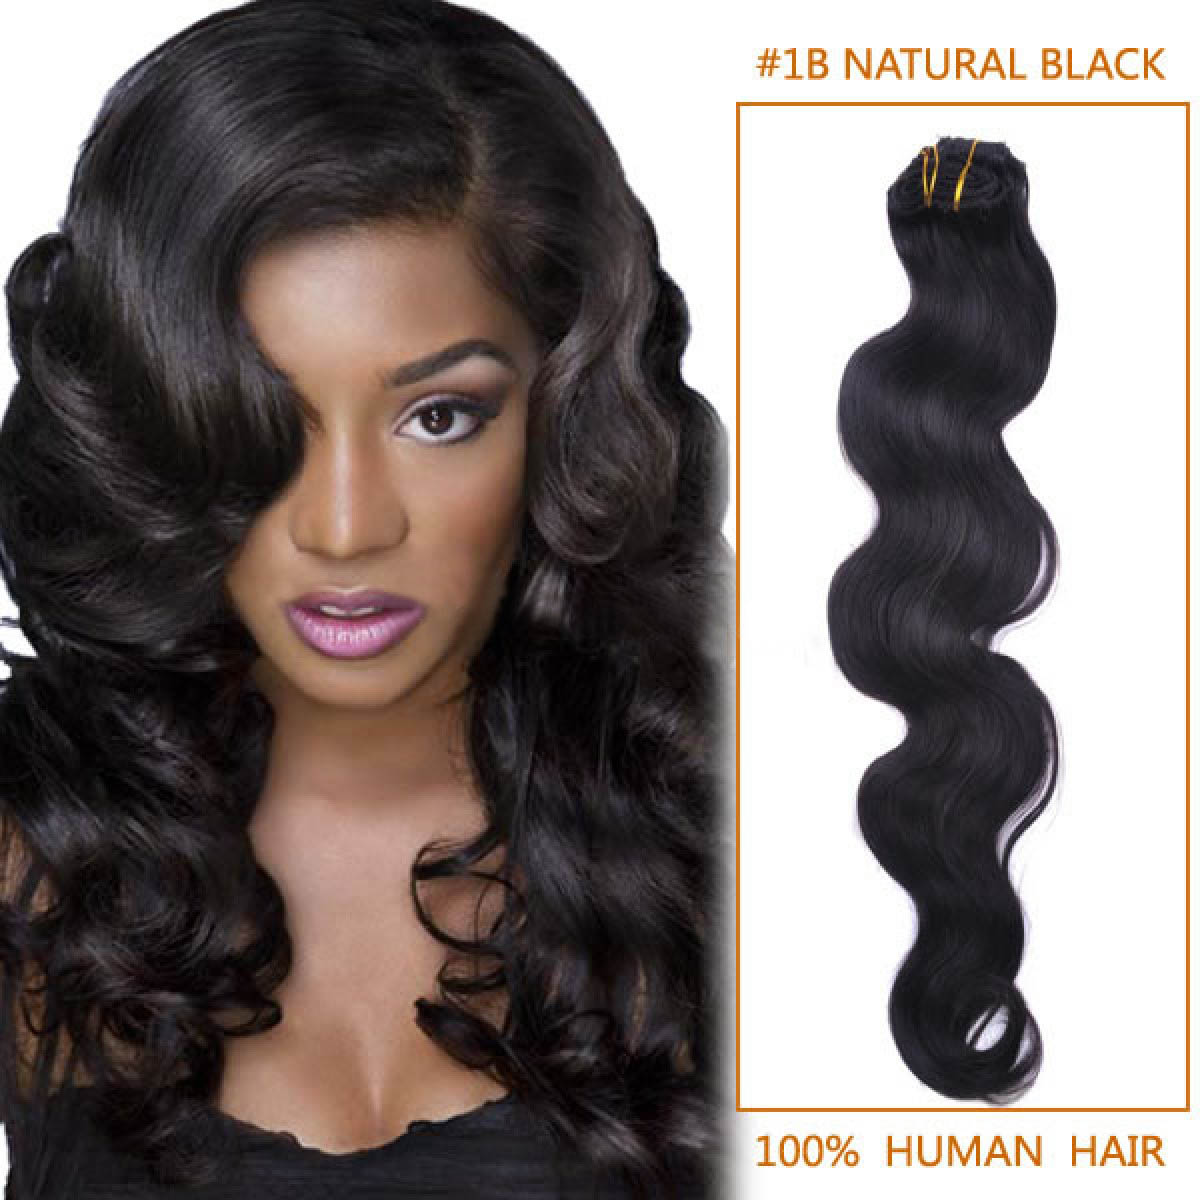 20 Inch 1b Natural Black Body Wave Indian Remy Hair Wefts